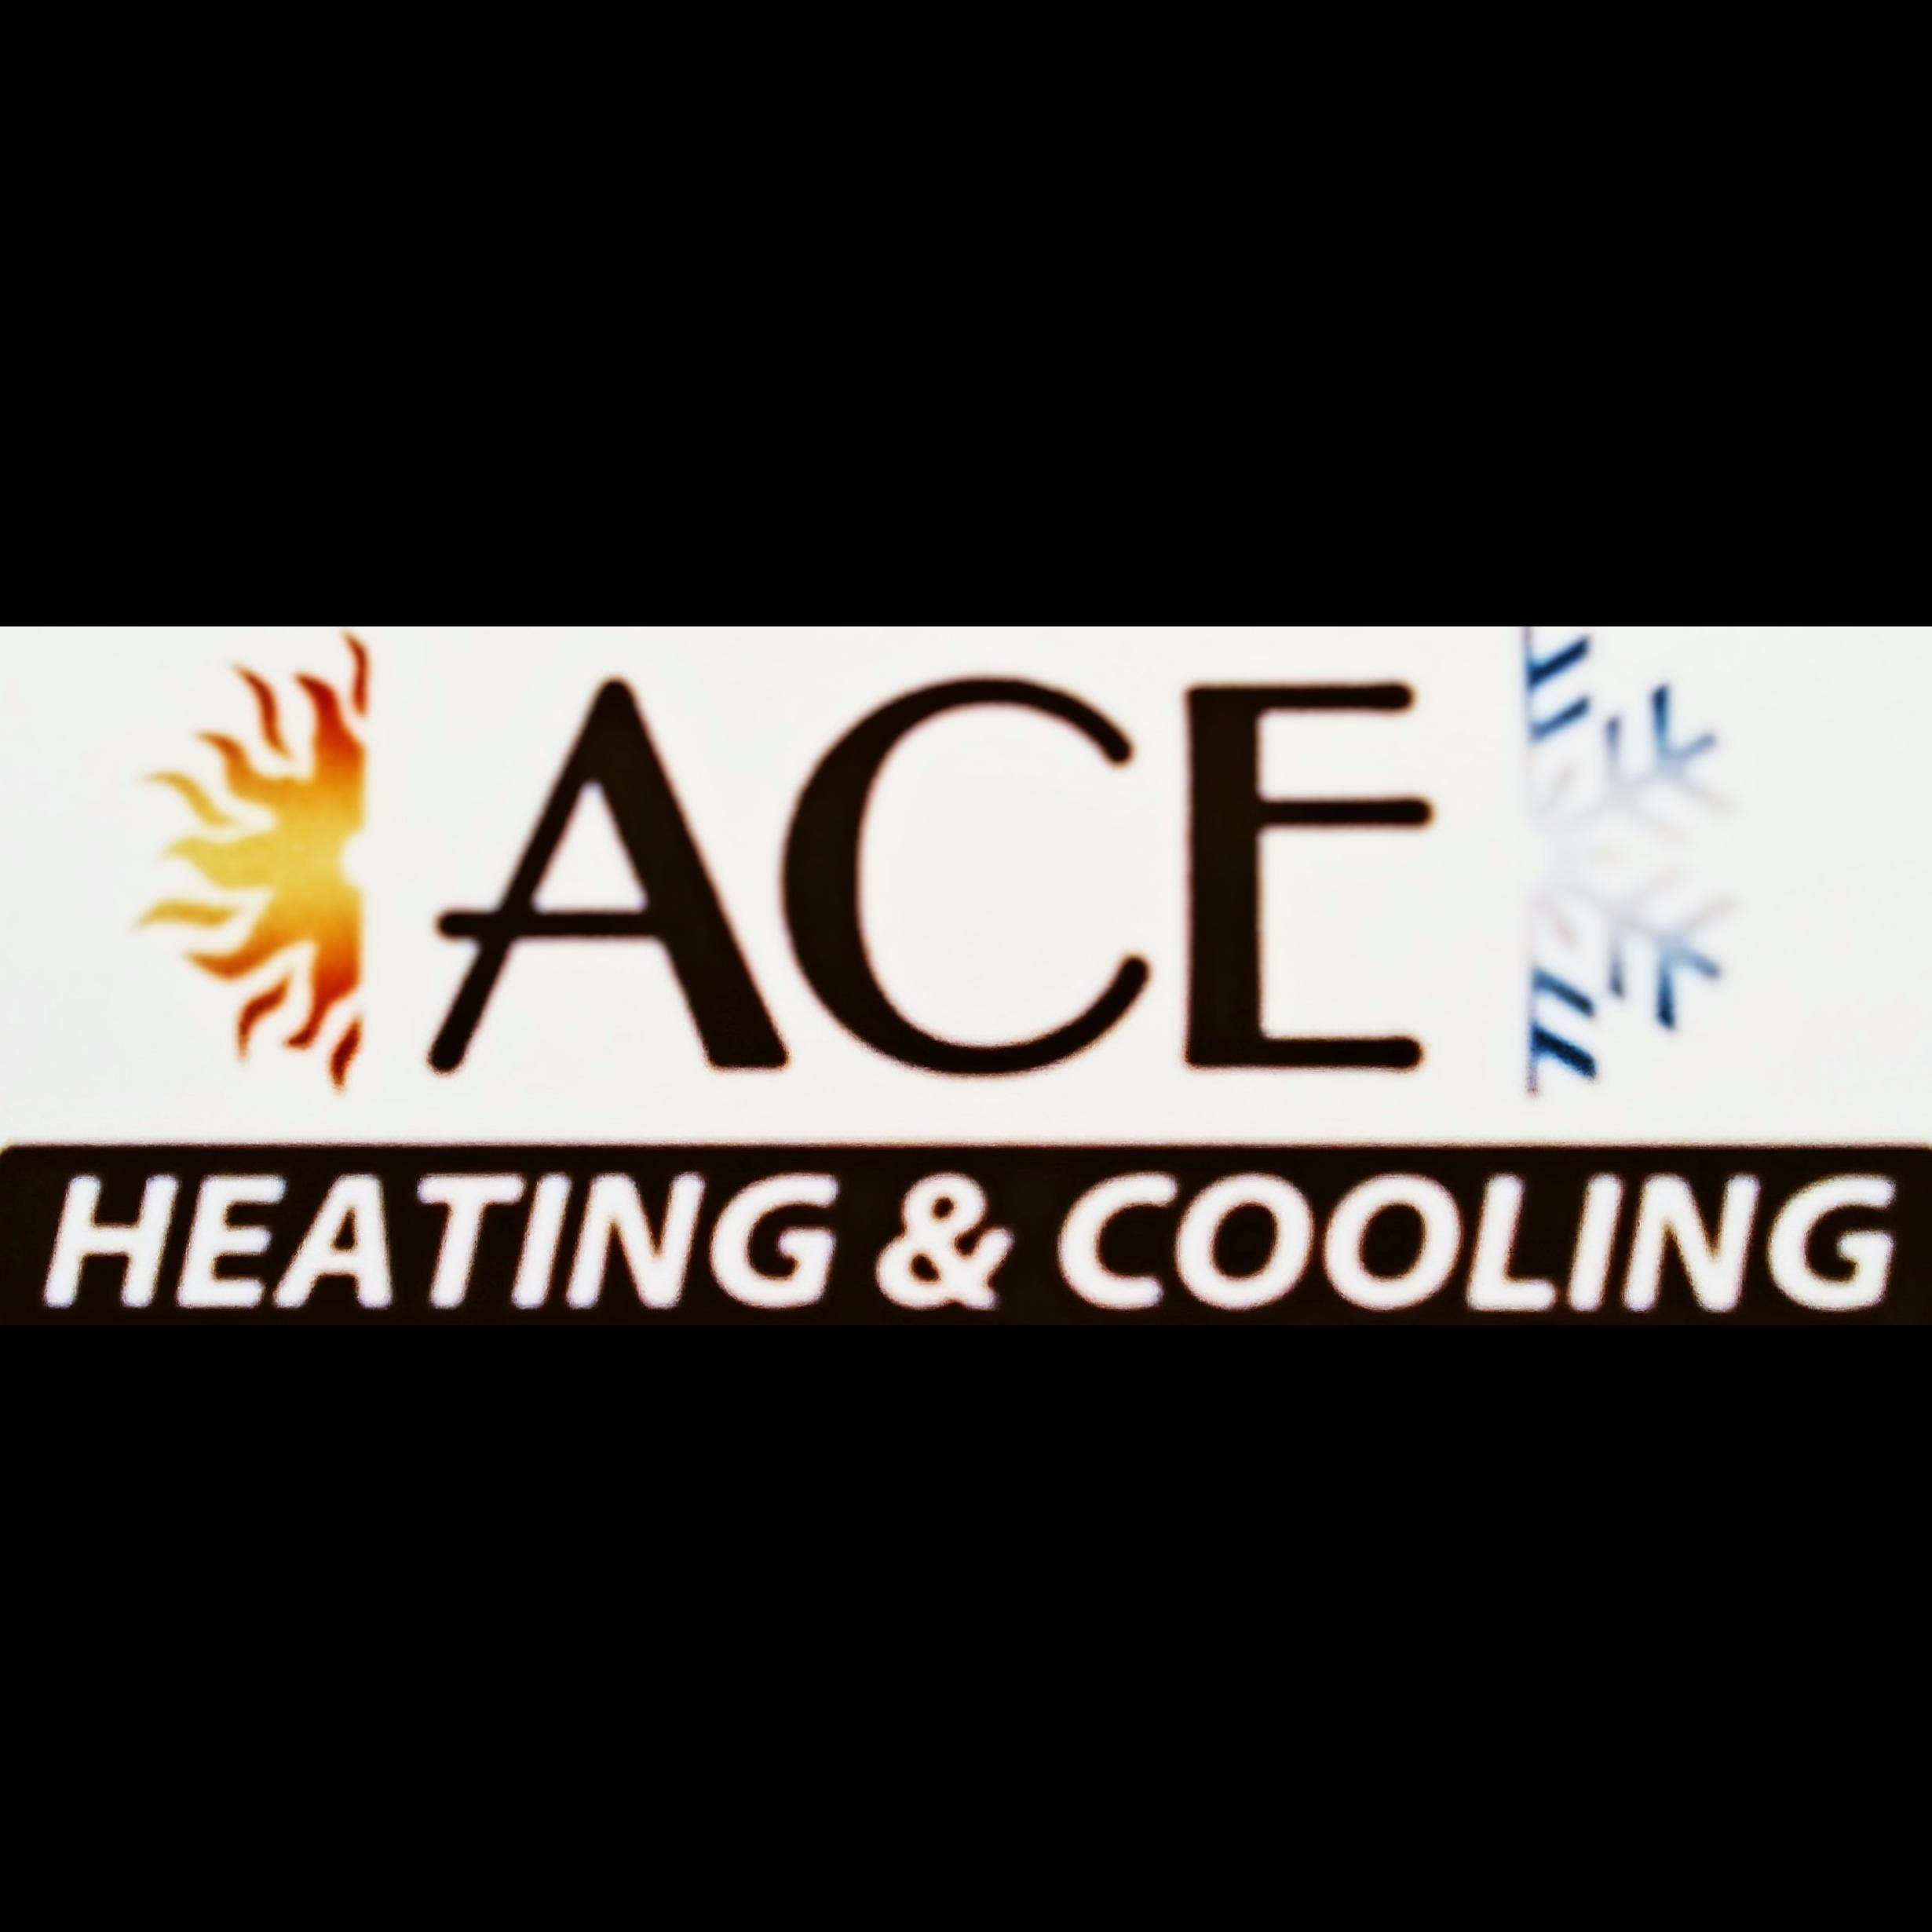 ACE Heating & Cooling image 2